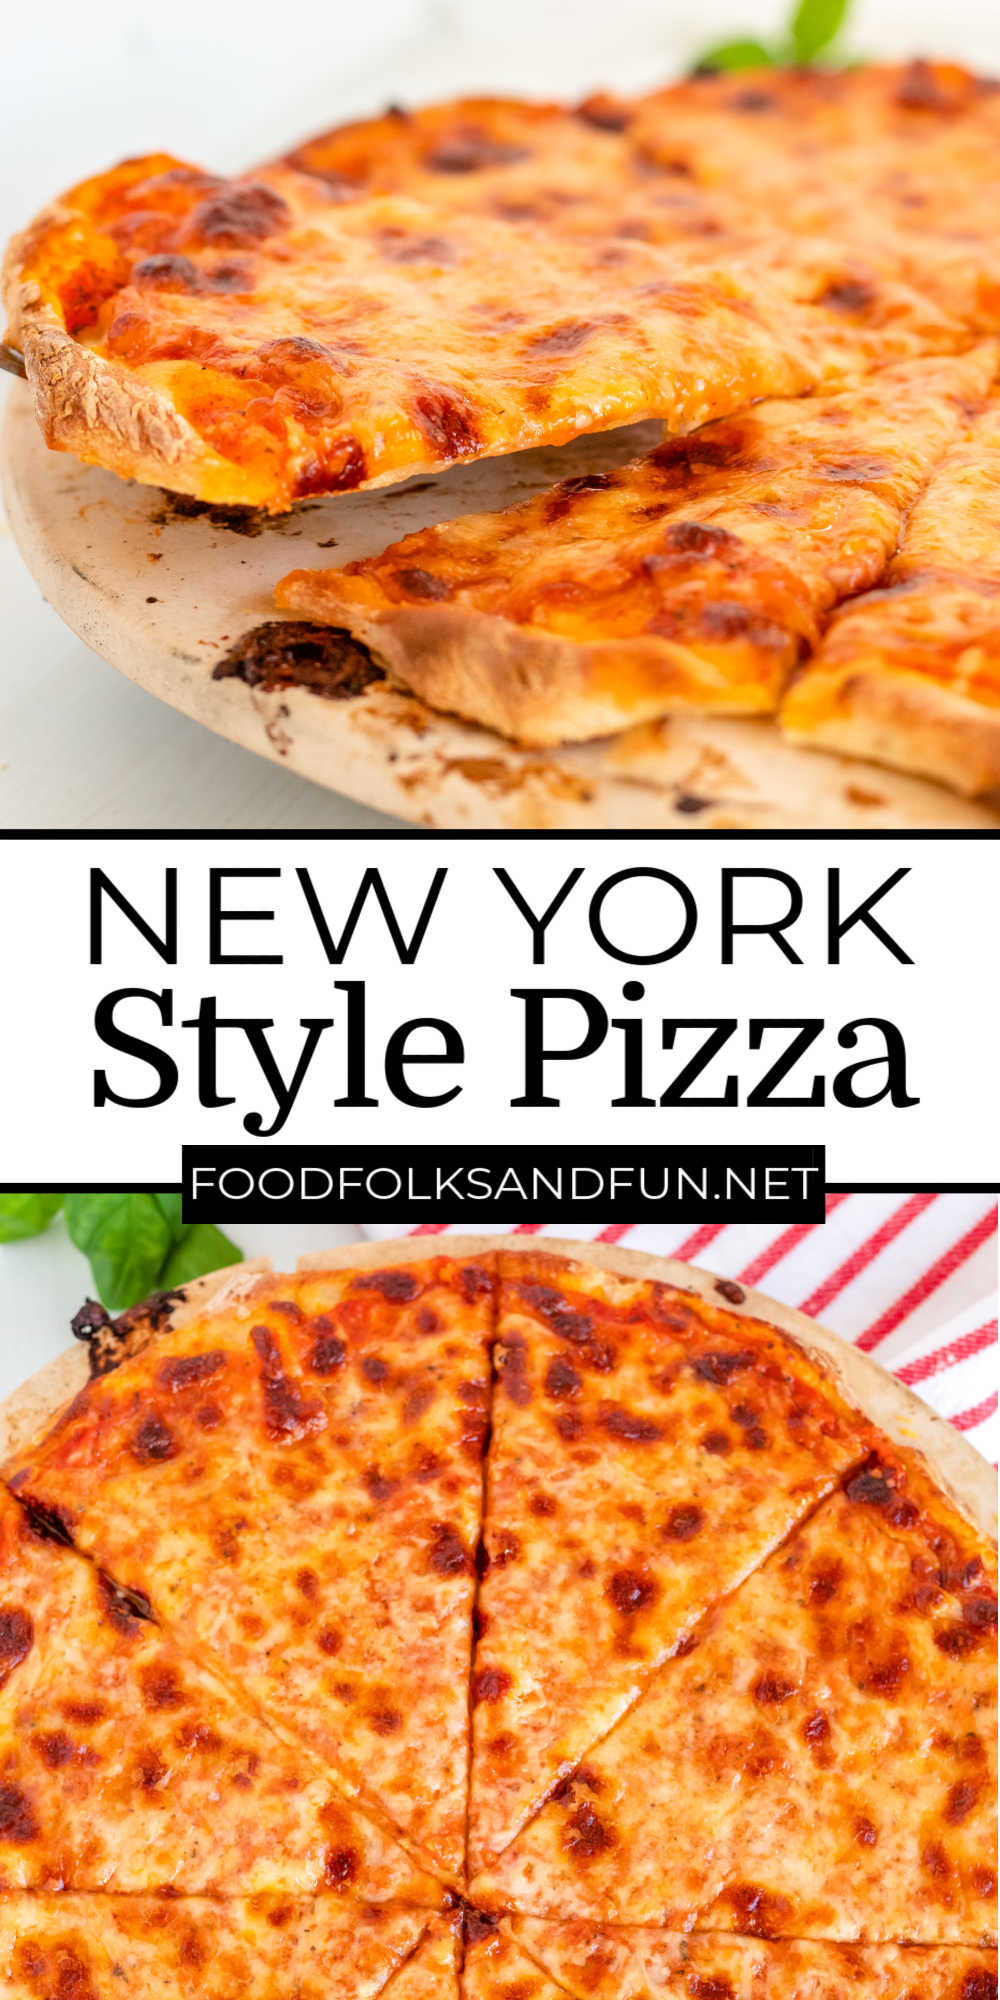 Finally, a thin-crust pizza recipe that tastes just like you got it from your favorite New York Pizzeria. Come learn how to make the best New York Style Pizza! via @foodfolksandfun